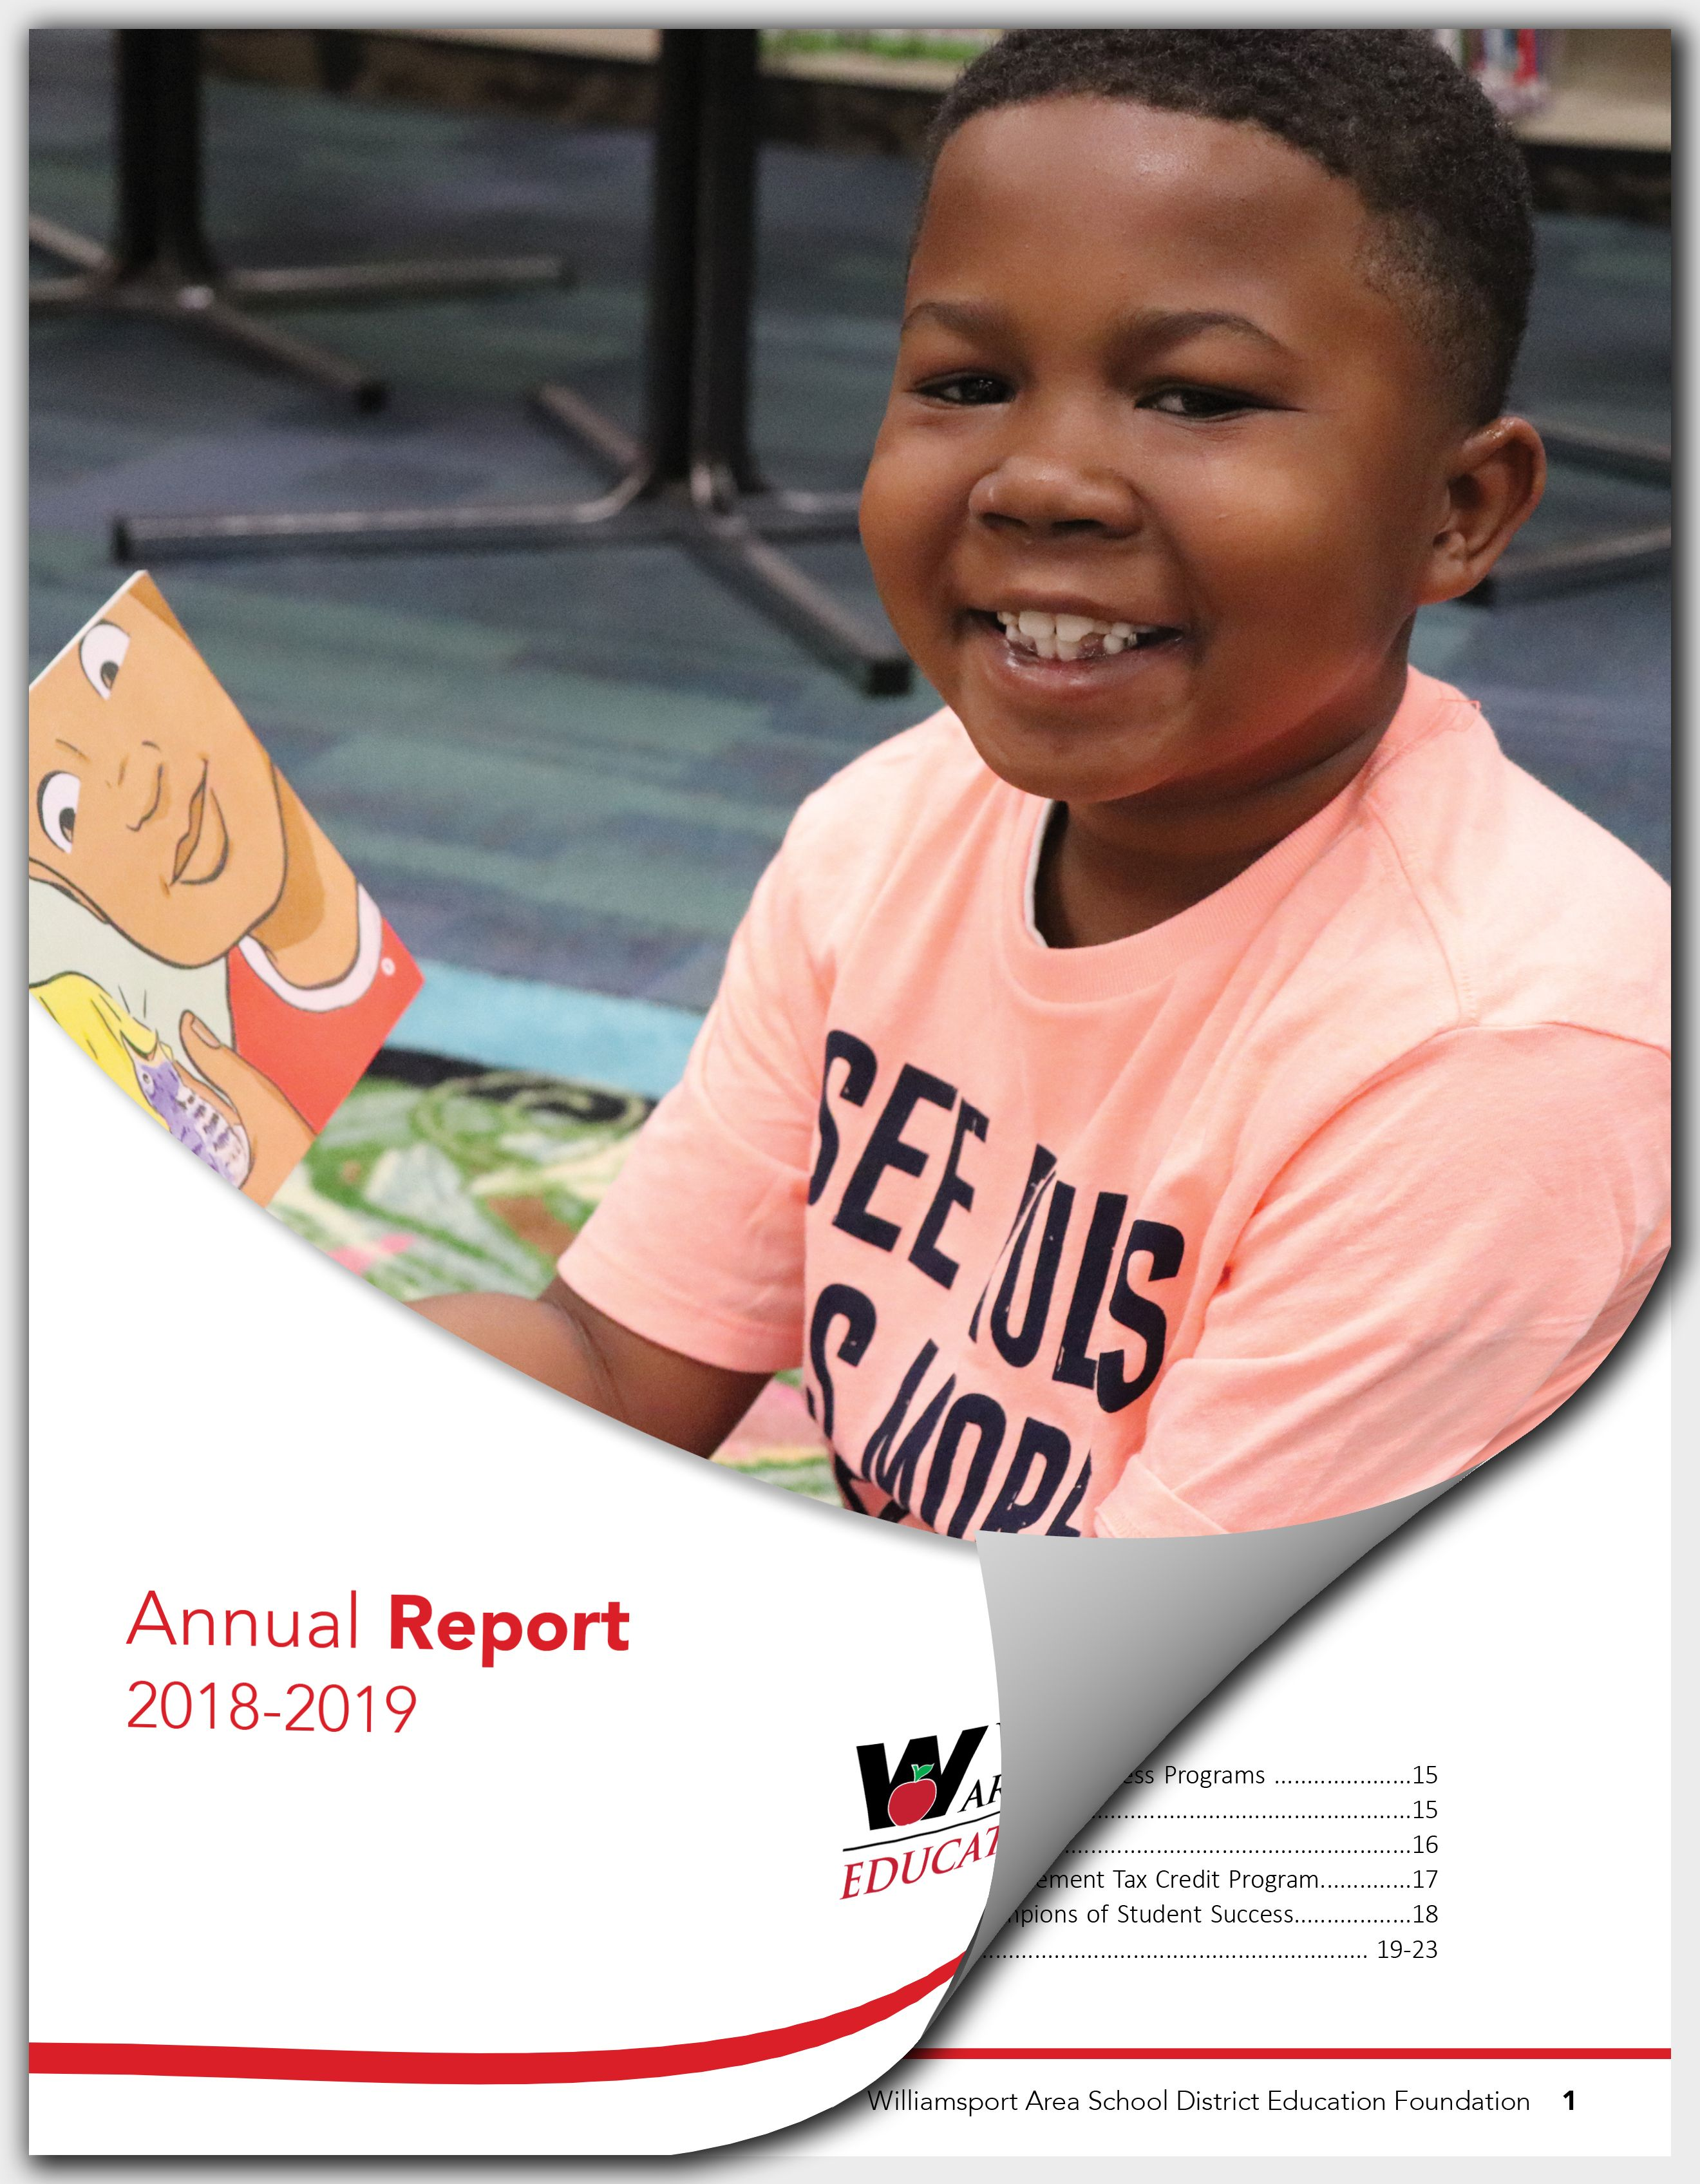 WASD Education Foundation Releases 2018-2019 Annual Report